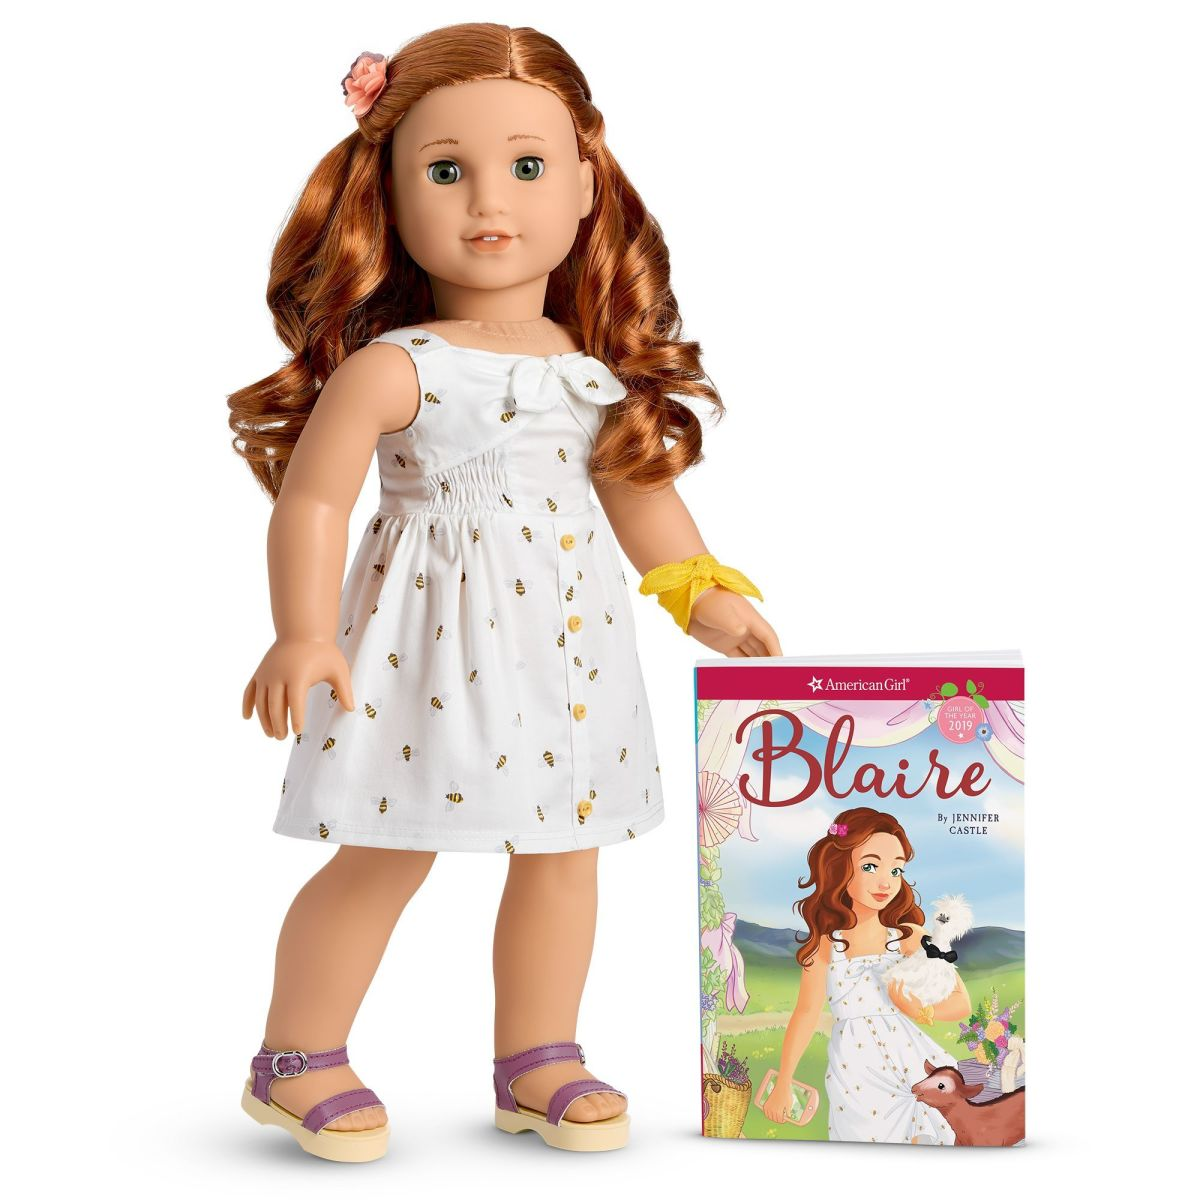 Blaire, the 2019 Girl of the Year